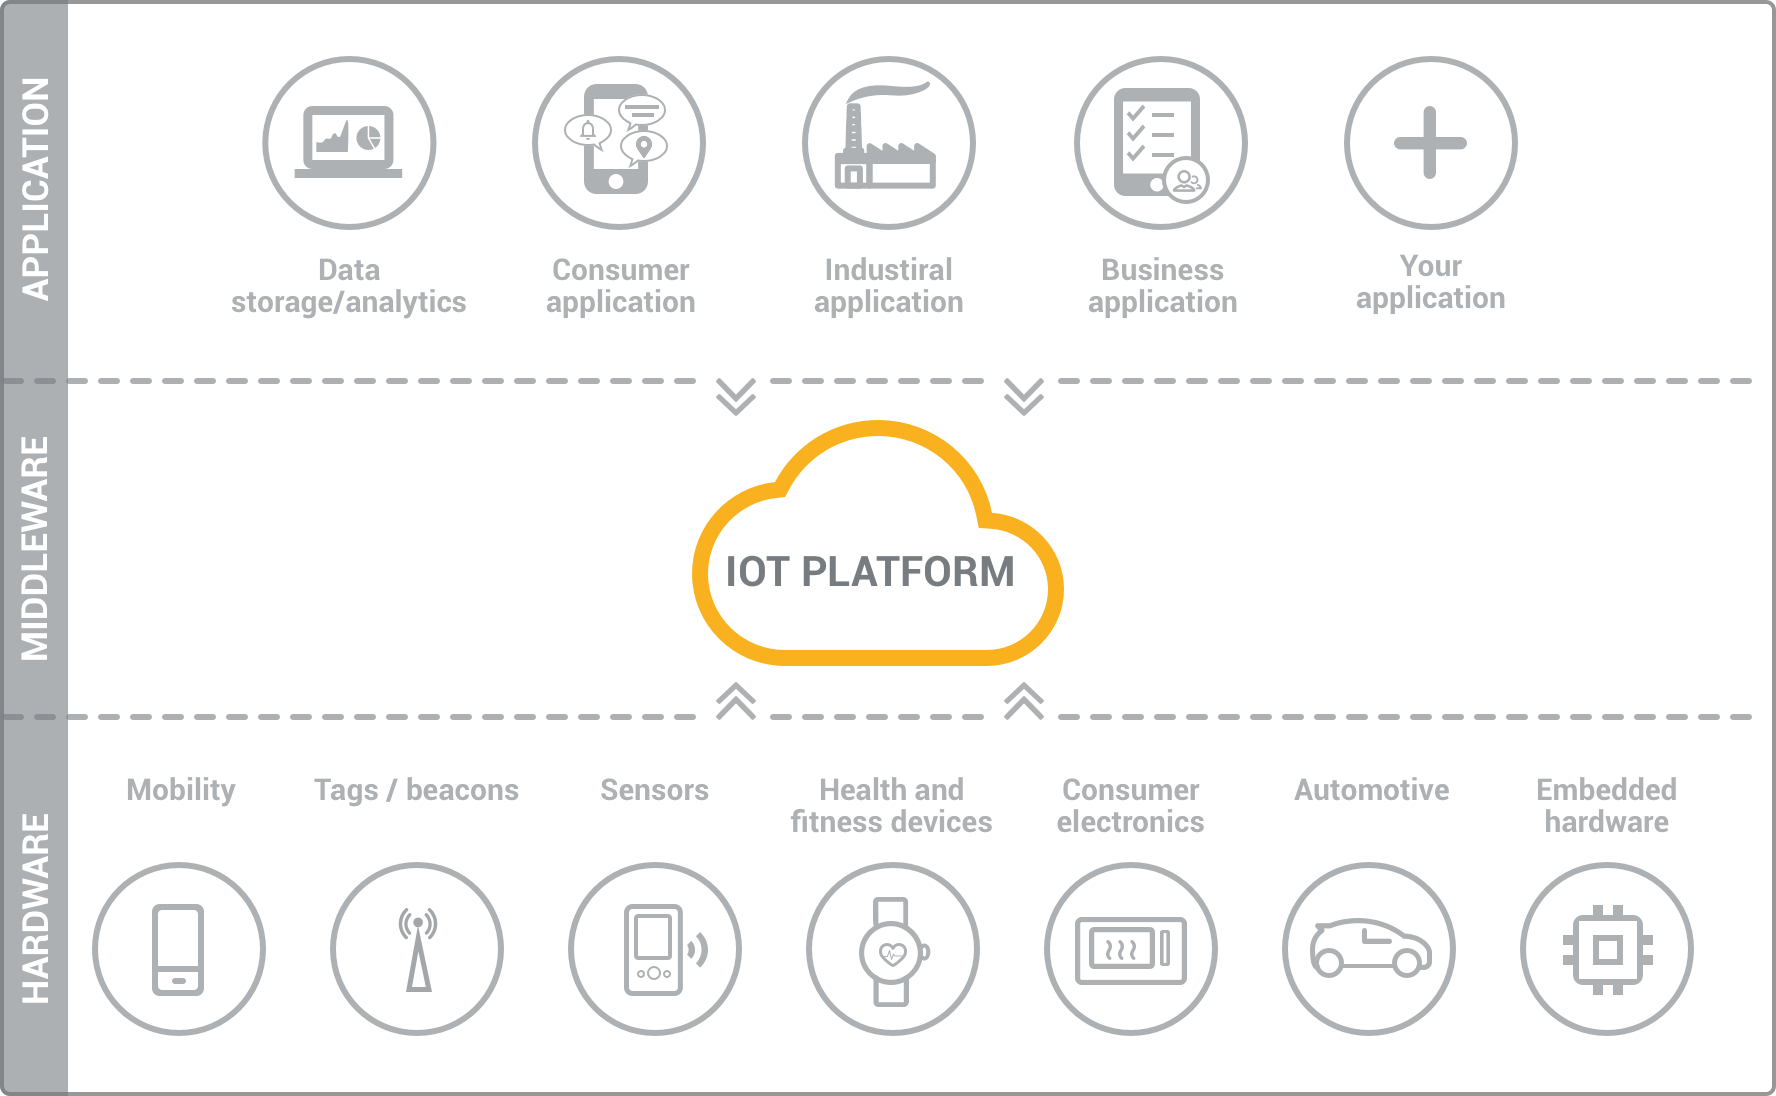 IoT platform as the middleware